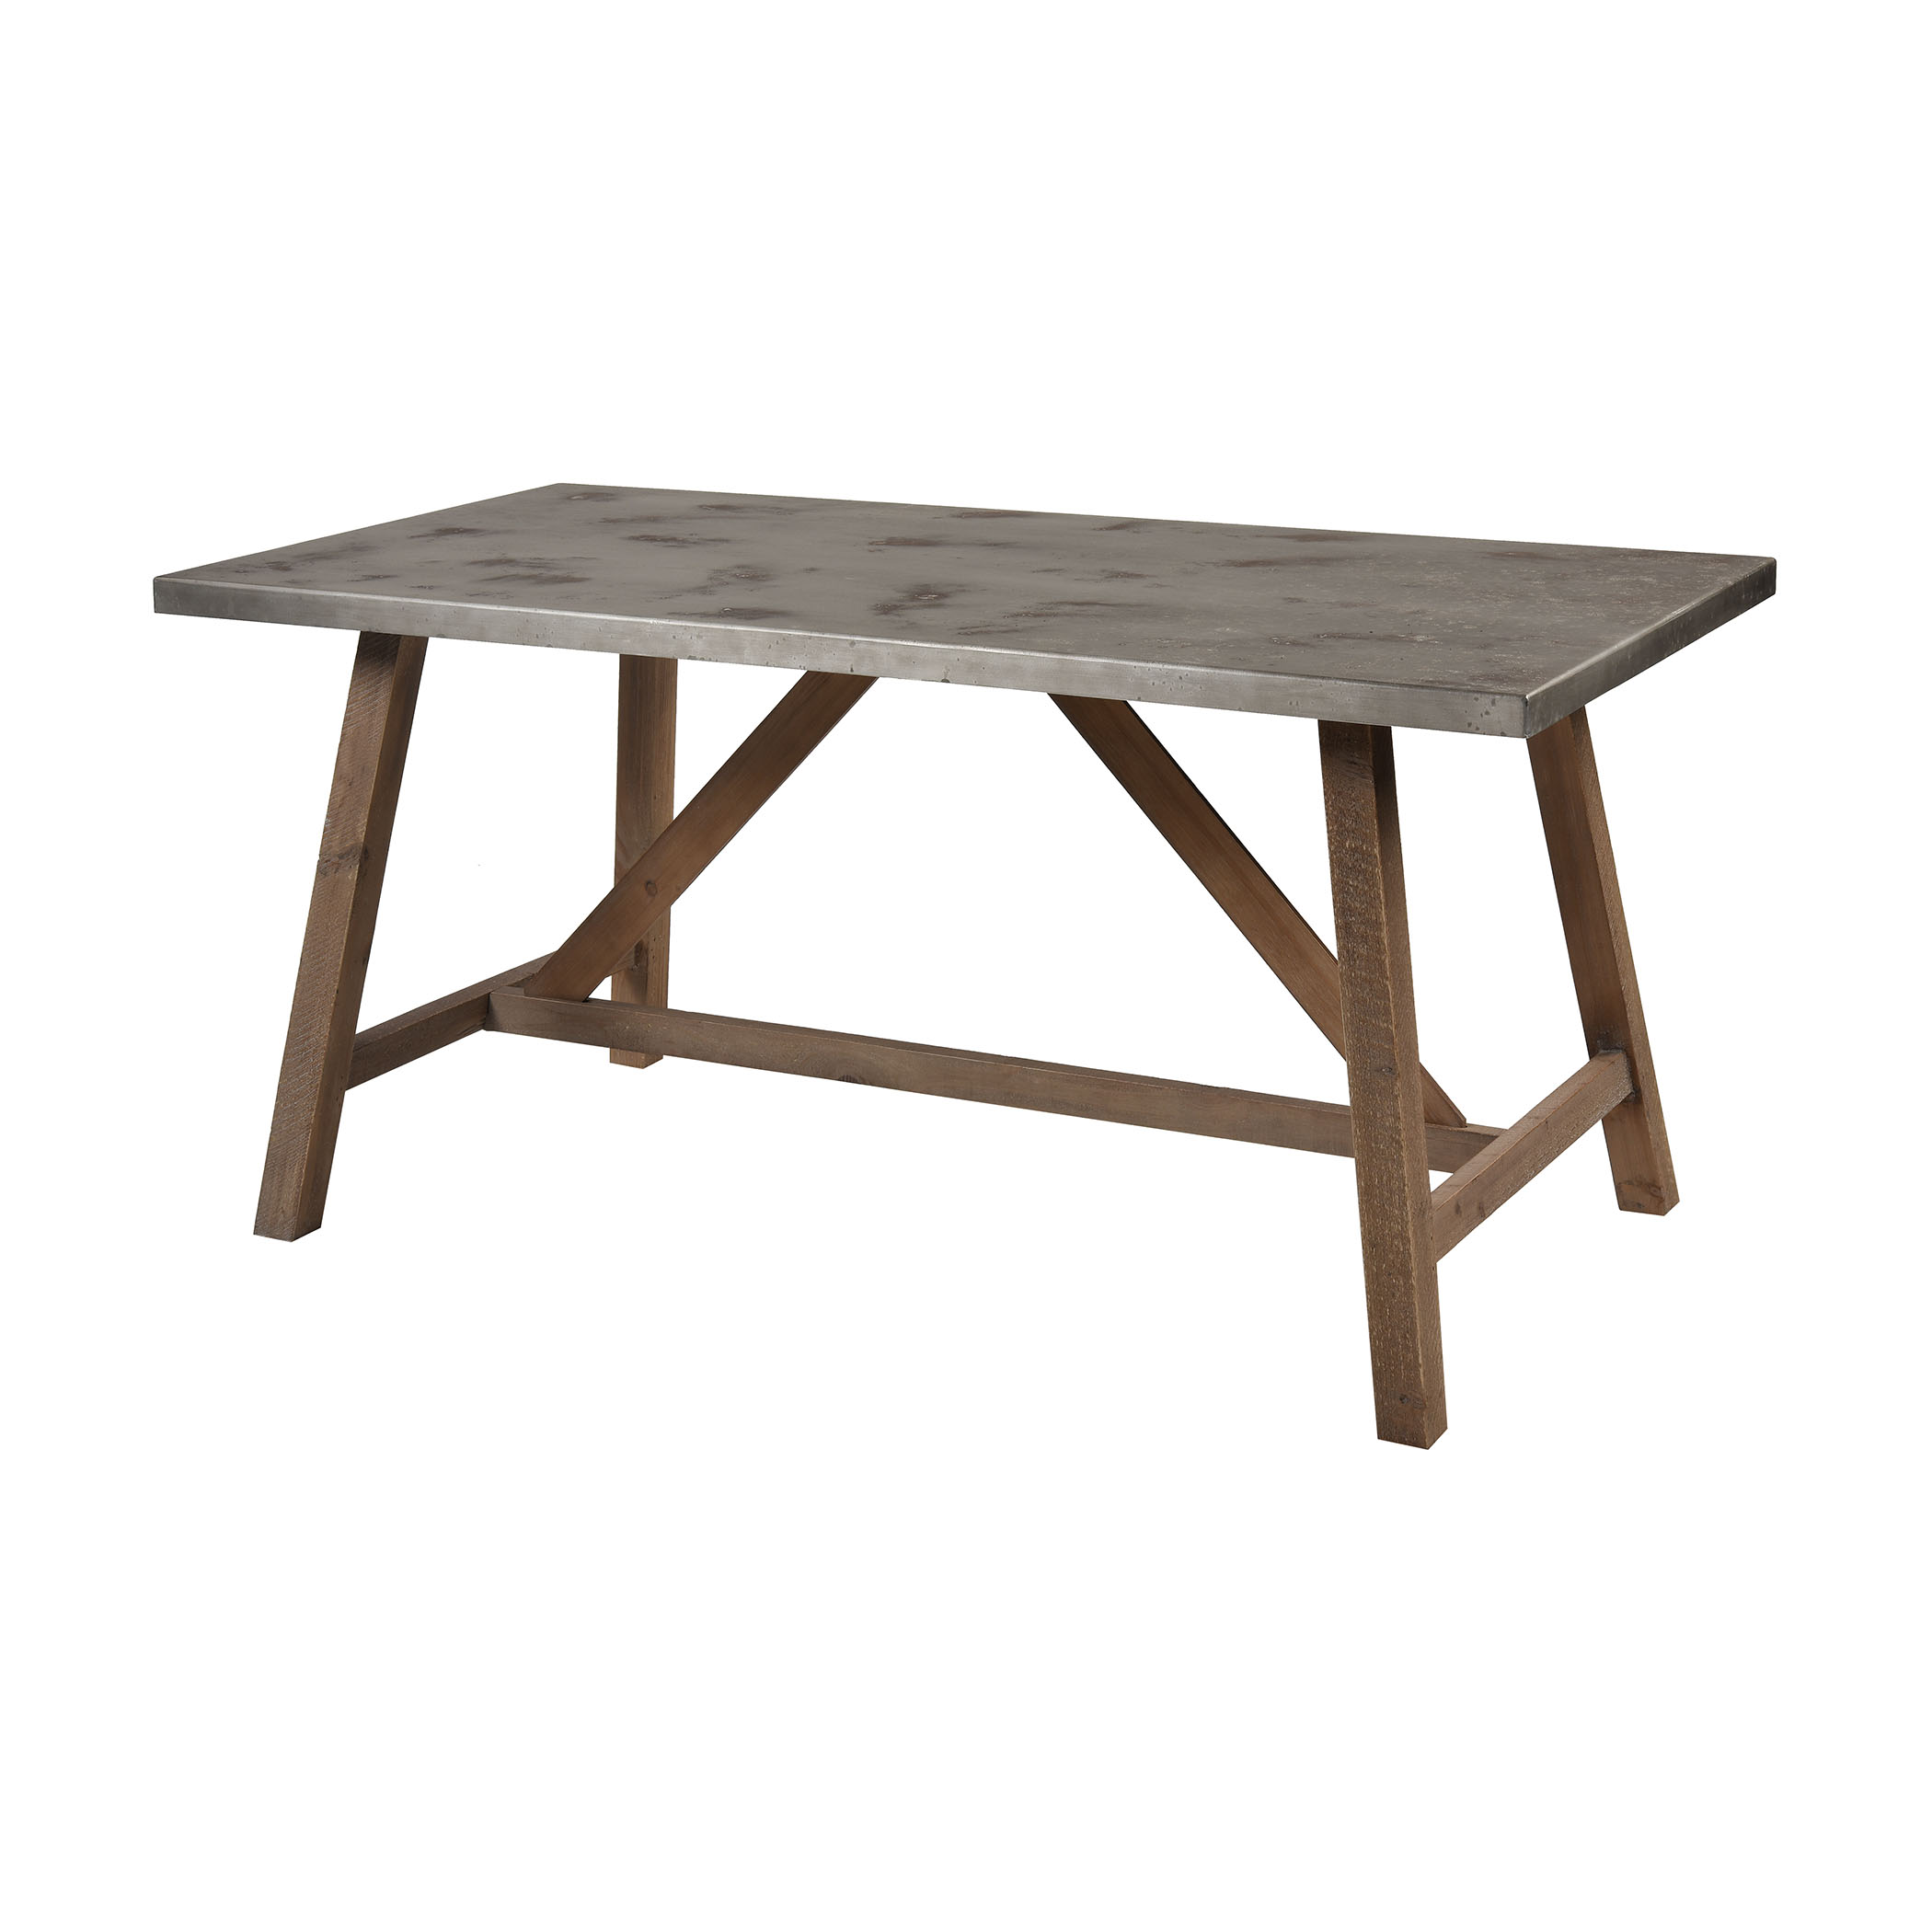 Perot Dining Table in Natural Wood and Concrete | Elk Home